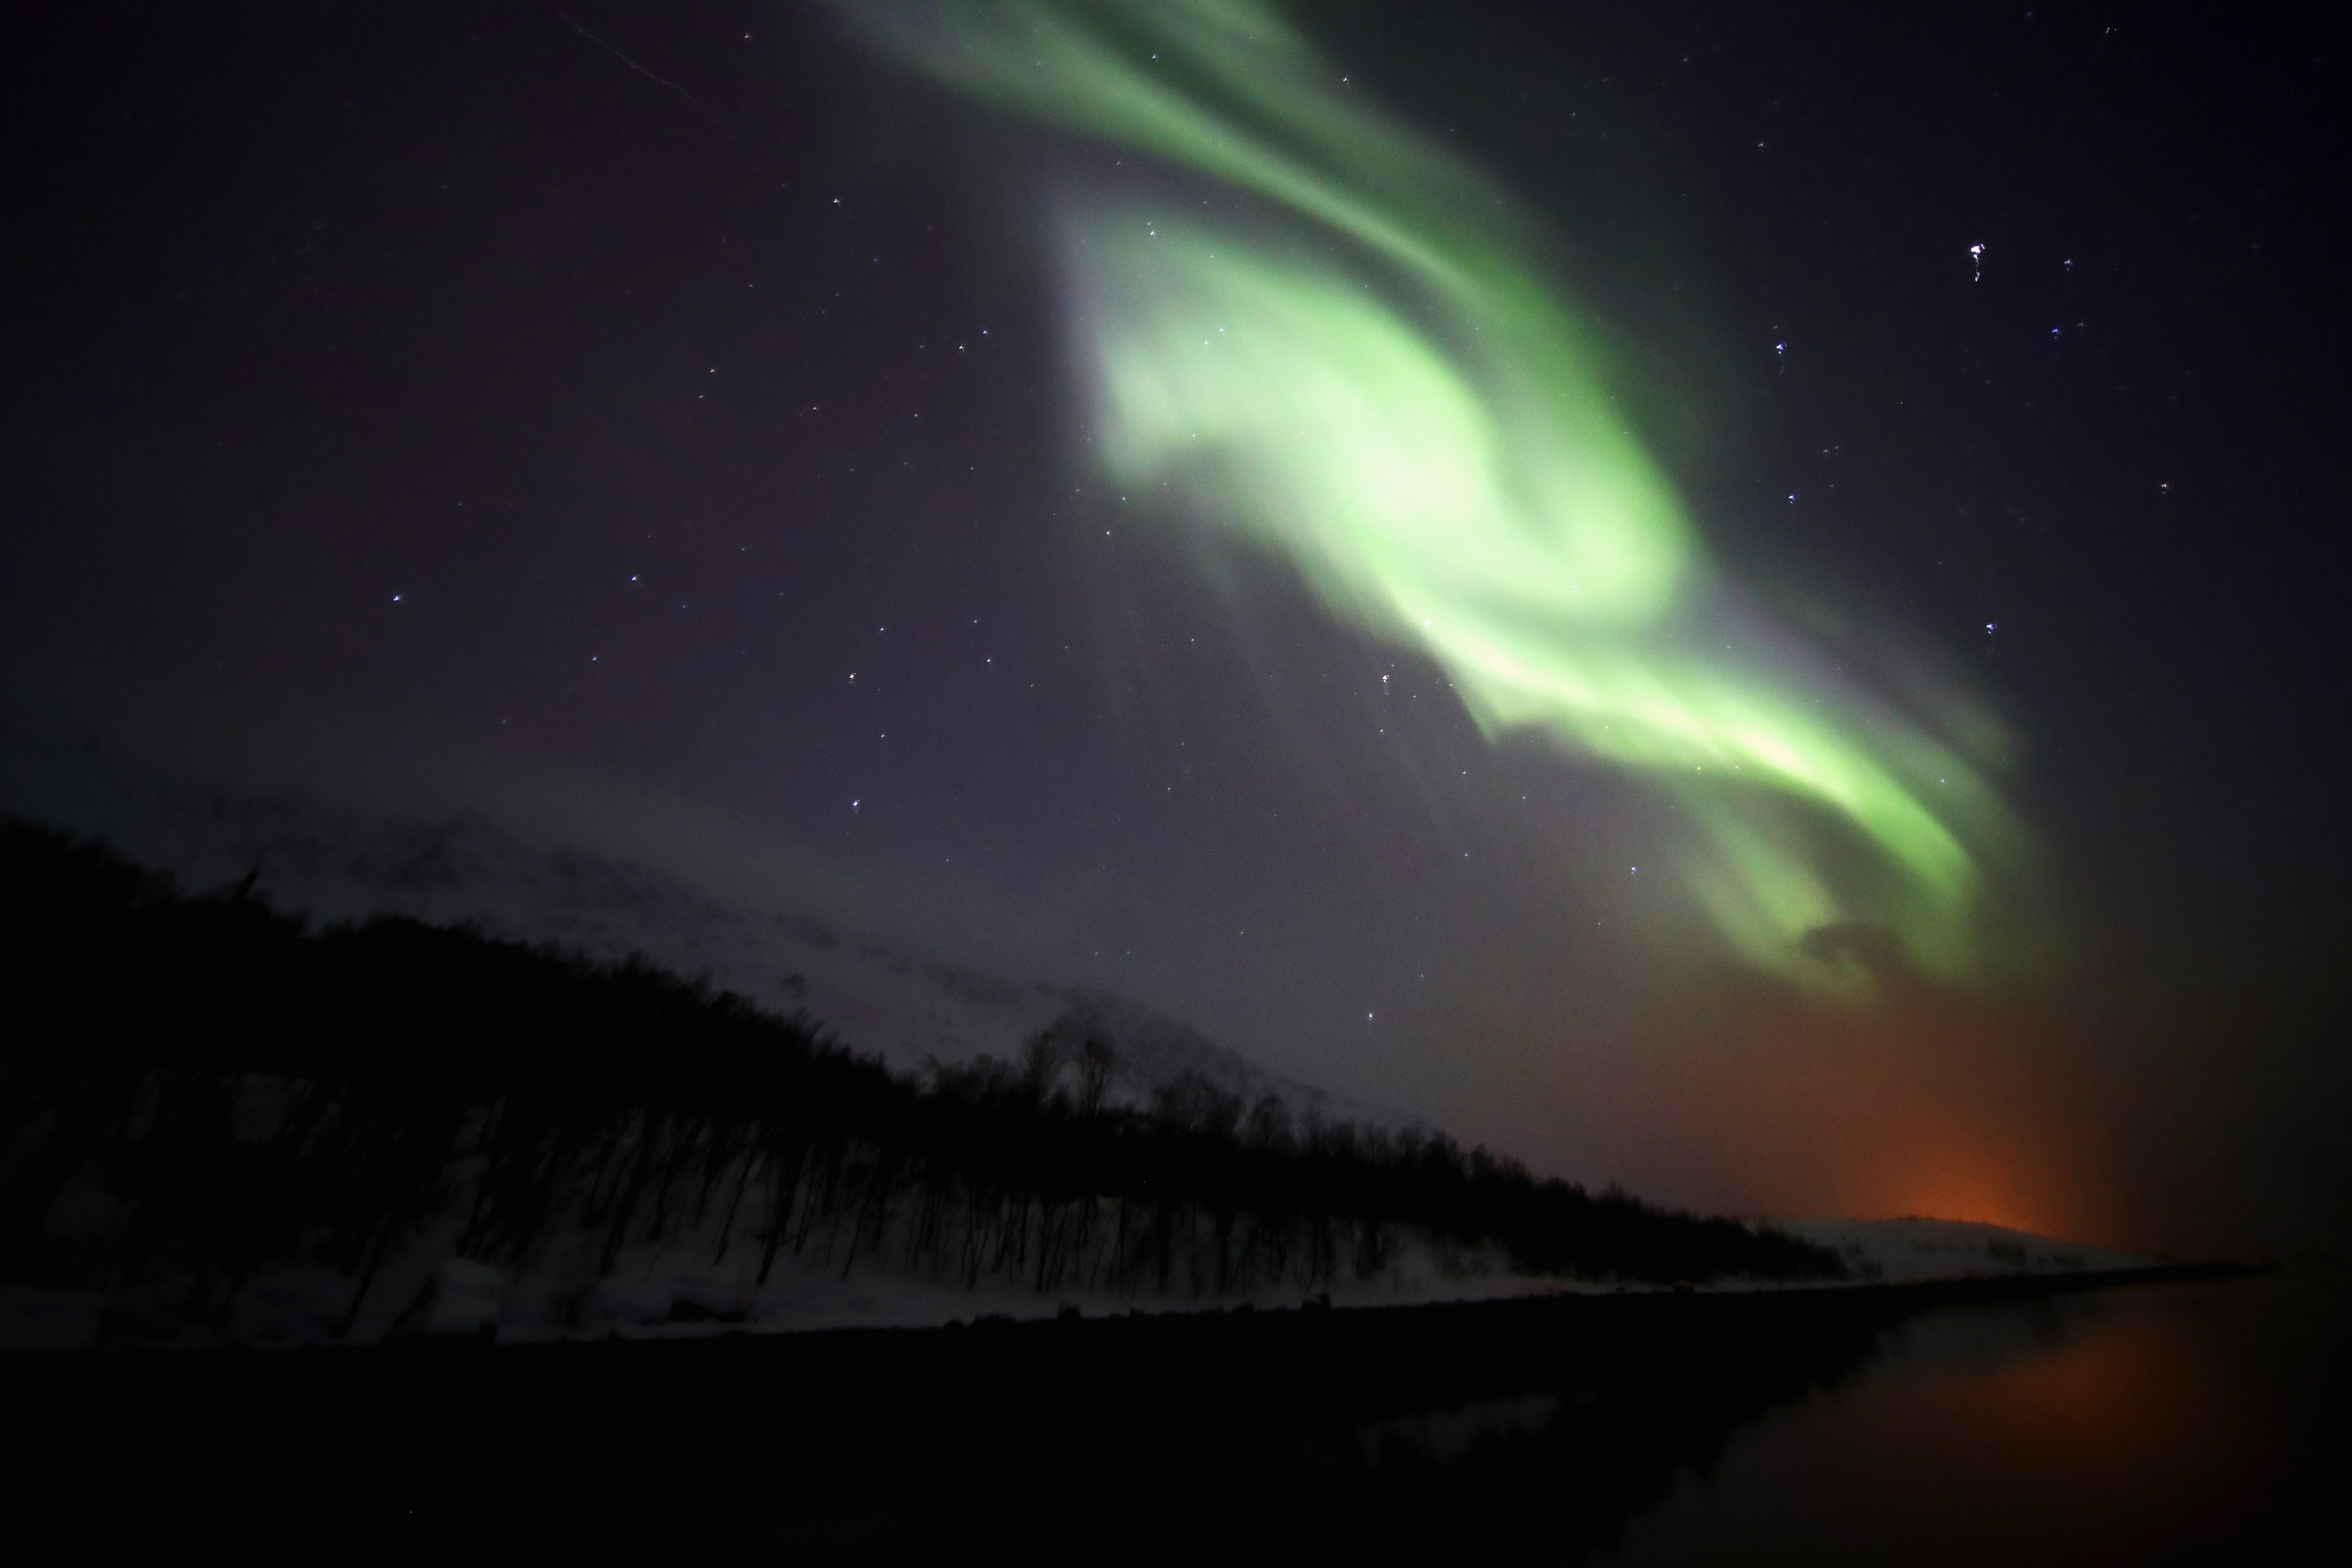 You might be able to see the Northern Lights tonight